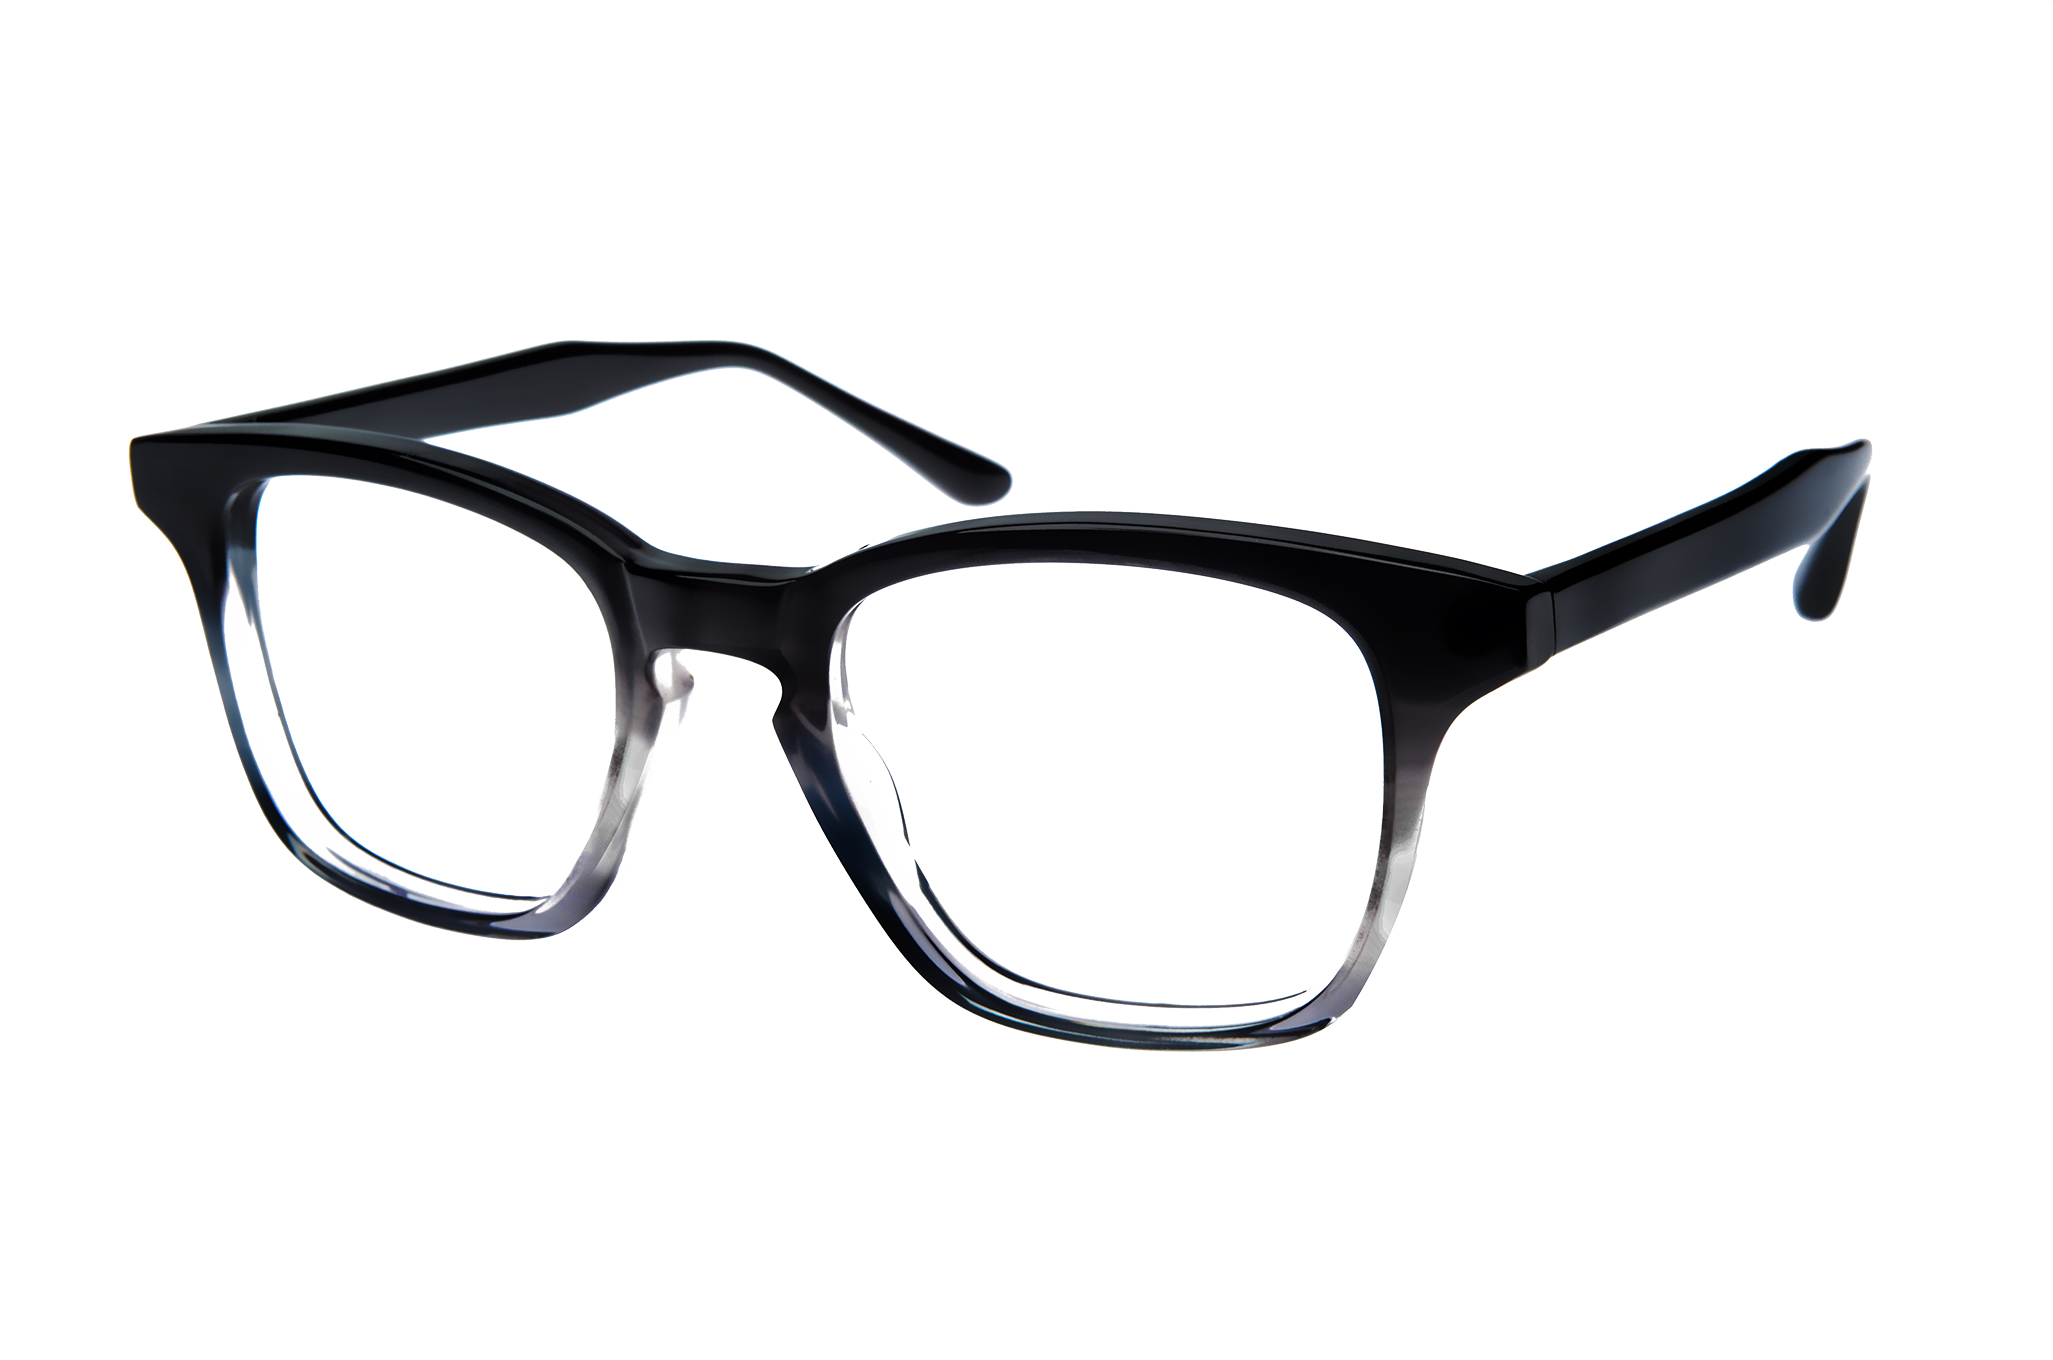 glasses PNG image - Glasses HD PNG